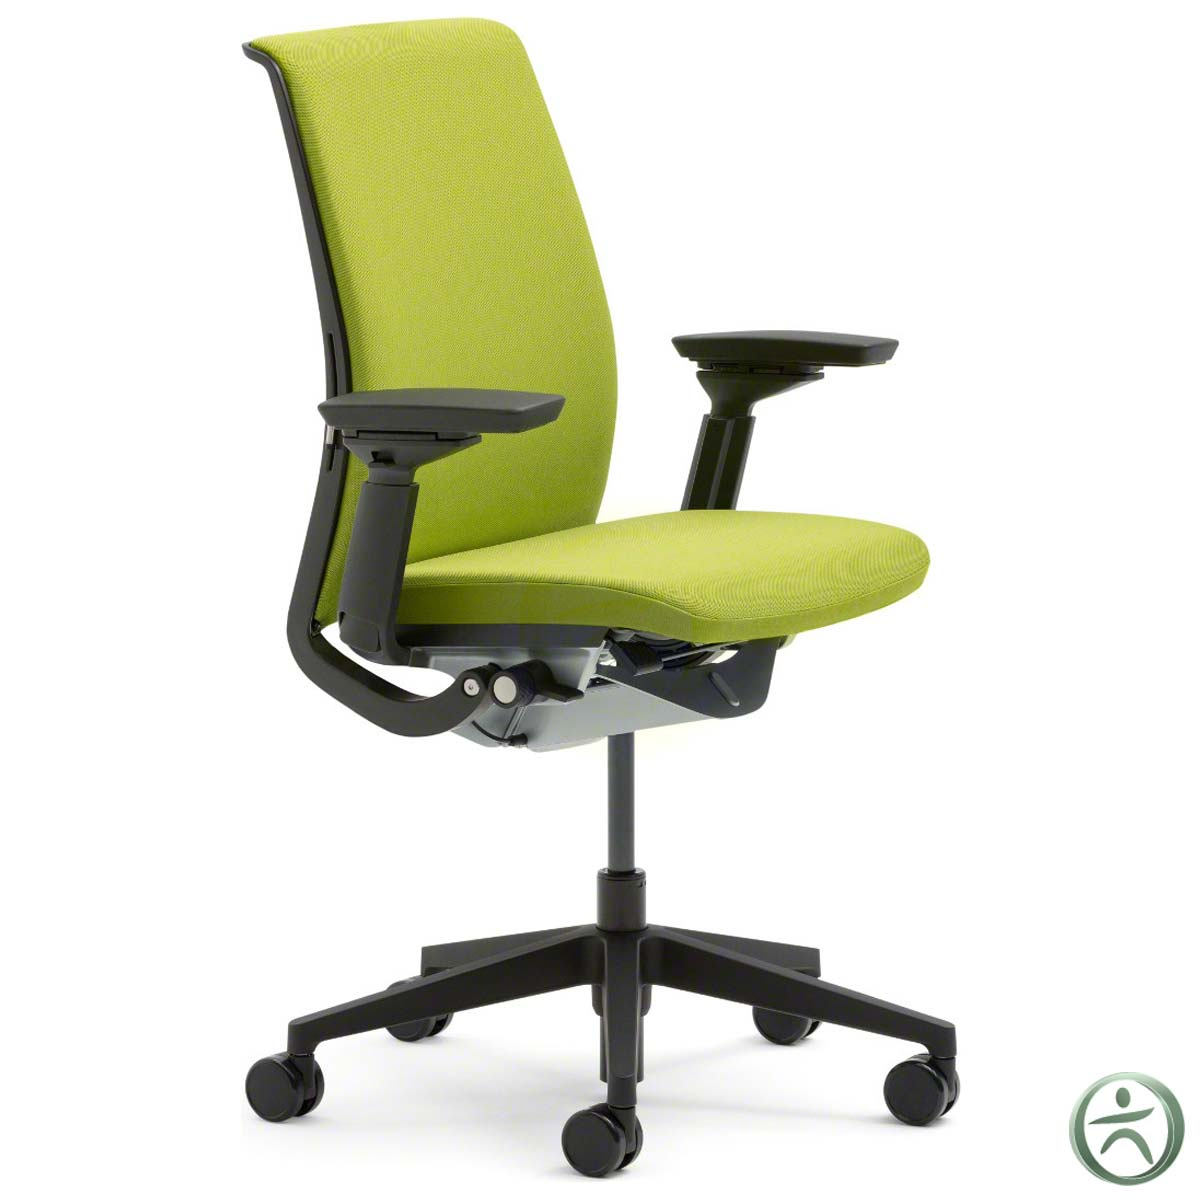 Steelcase Chairs Shop Steelcase Think Ergonomic Chairs At The Human Solution